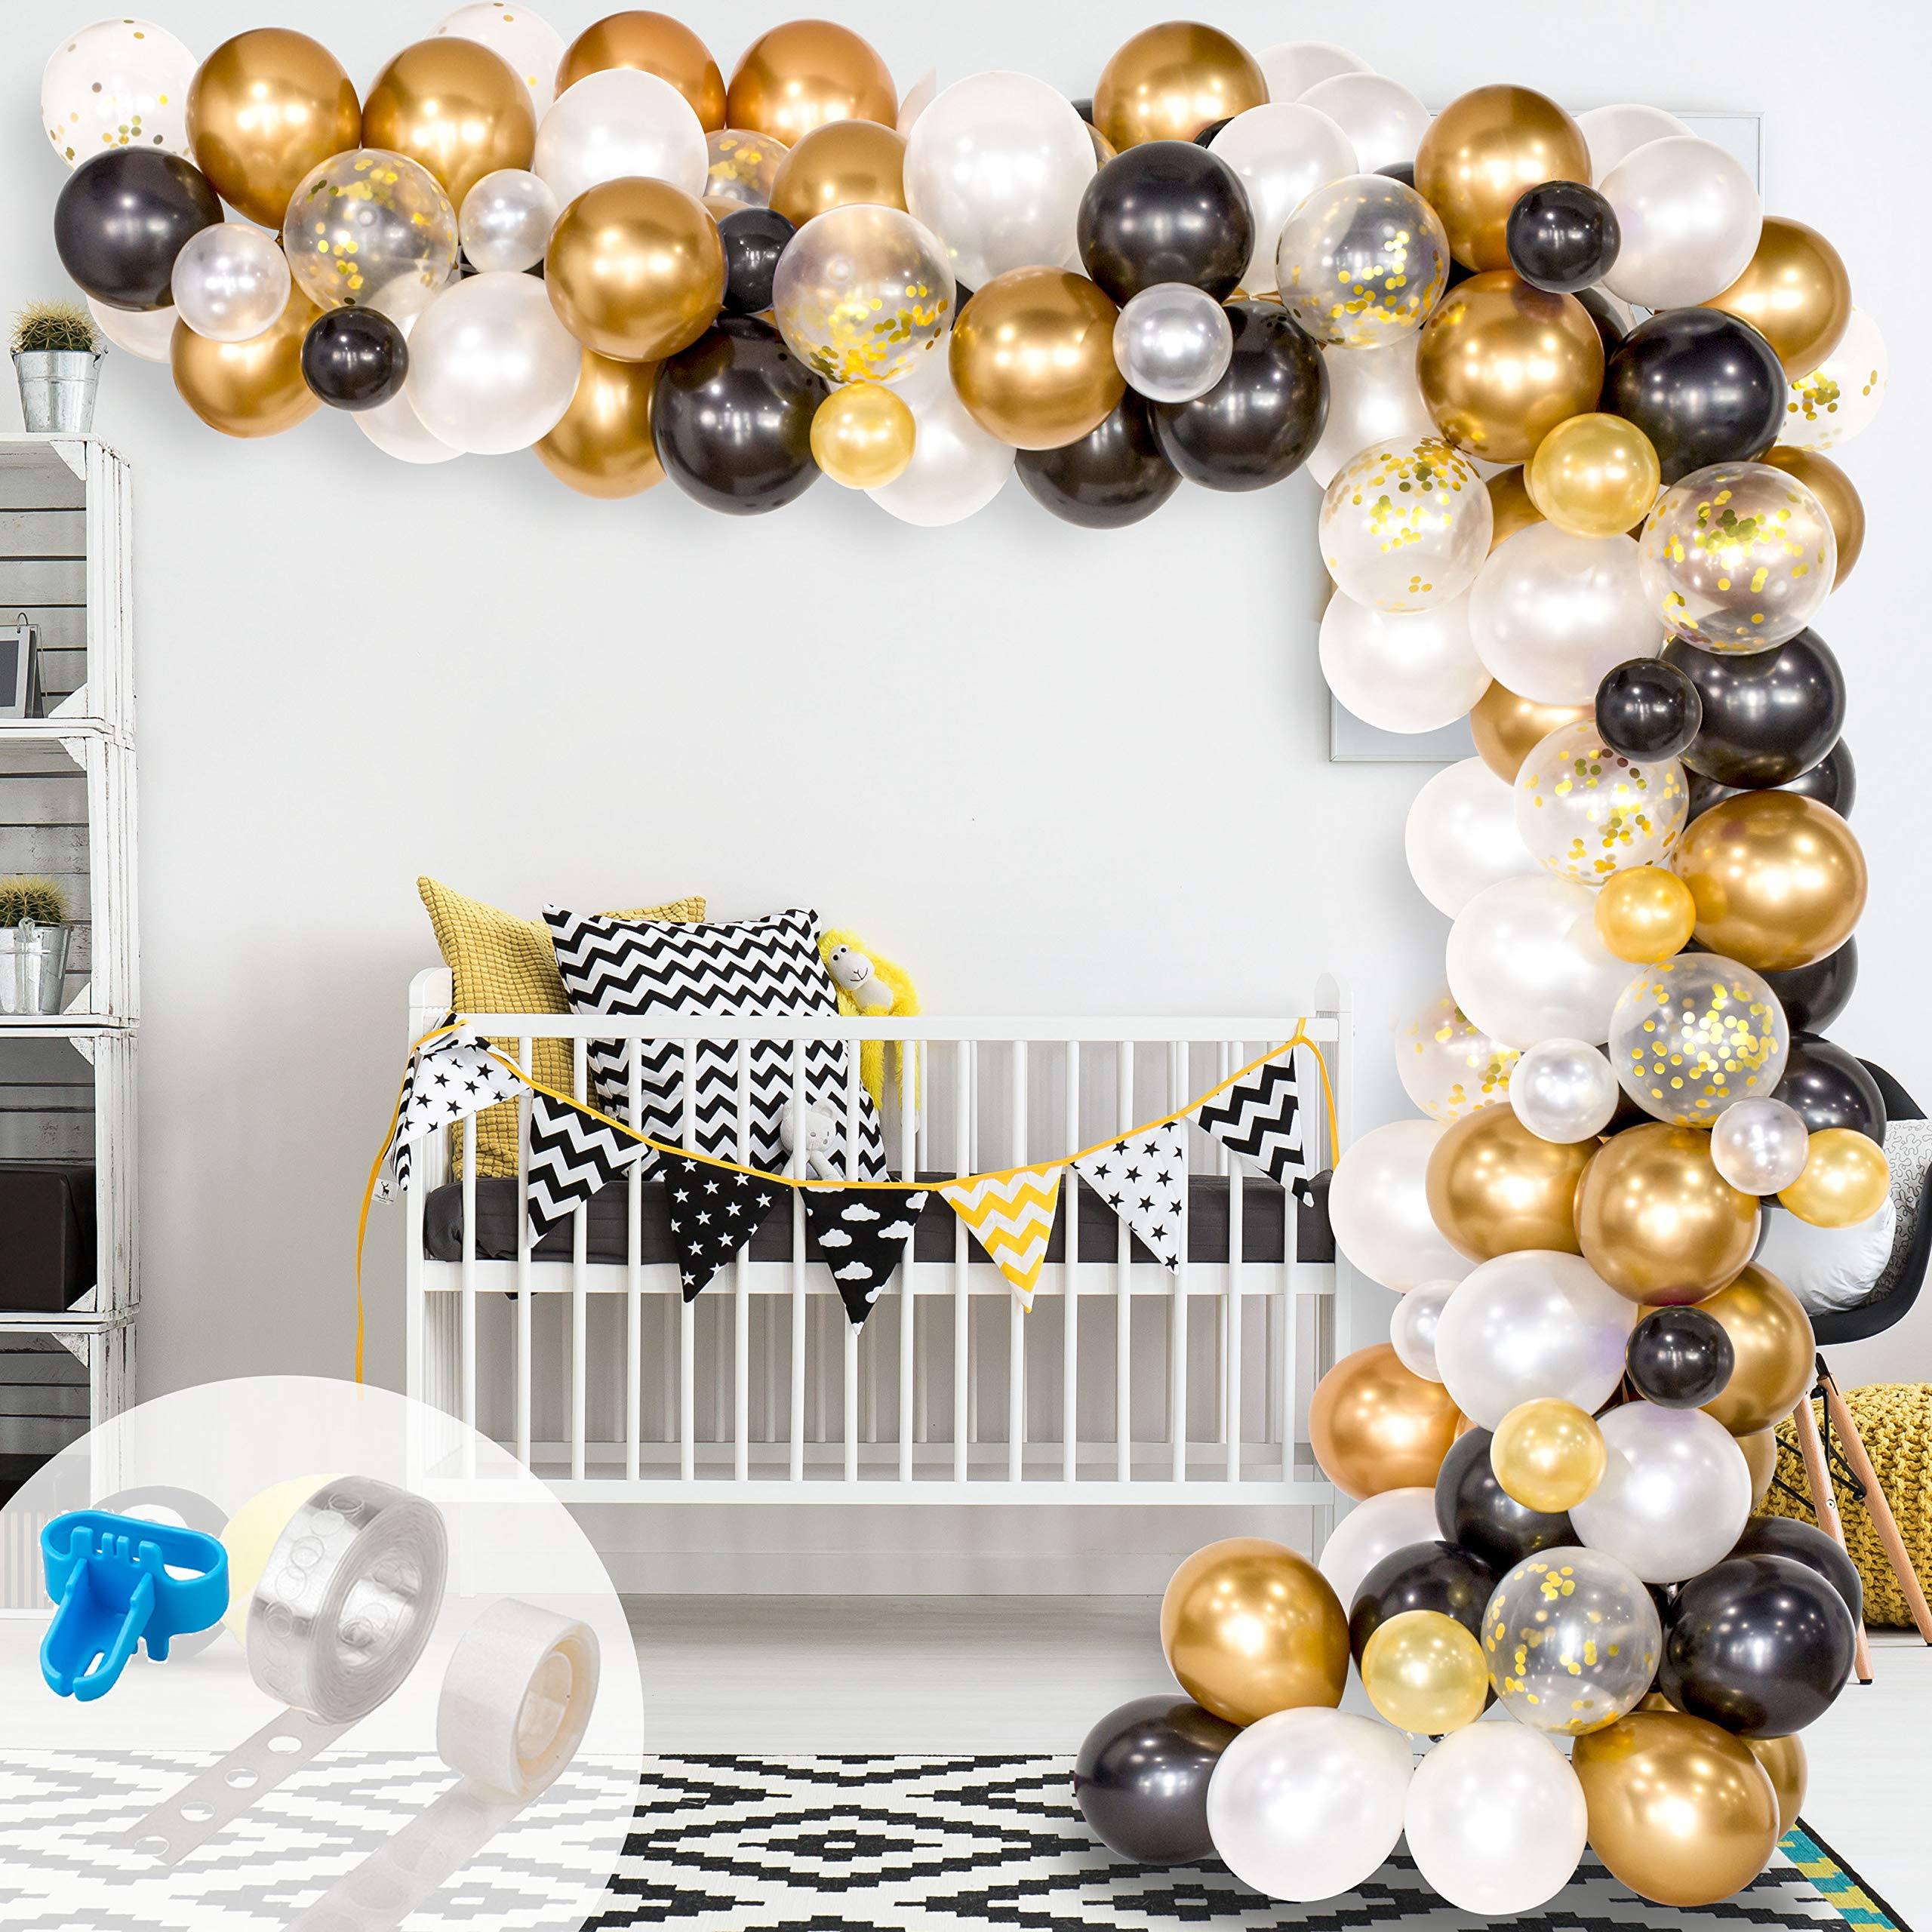 Whaline Balloon Arch & Garland Kit, 120Pcs Black, White, Gold Confetti and Metal Latex Balloons with 1pcs Tying Tool, Balloon Strip Tape and Glue Dots for Wedding Birthday Grad Party Graduation Decor by Whaline